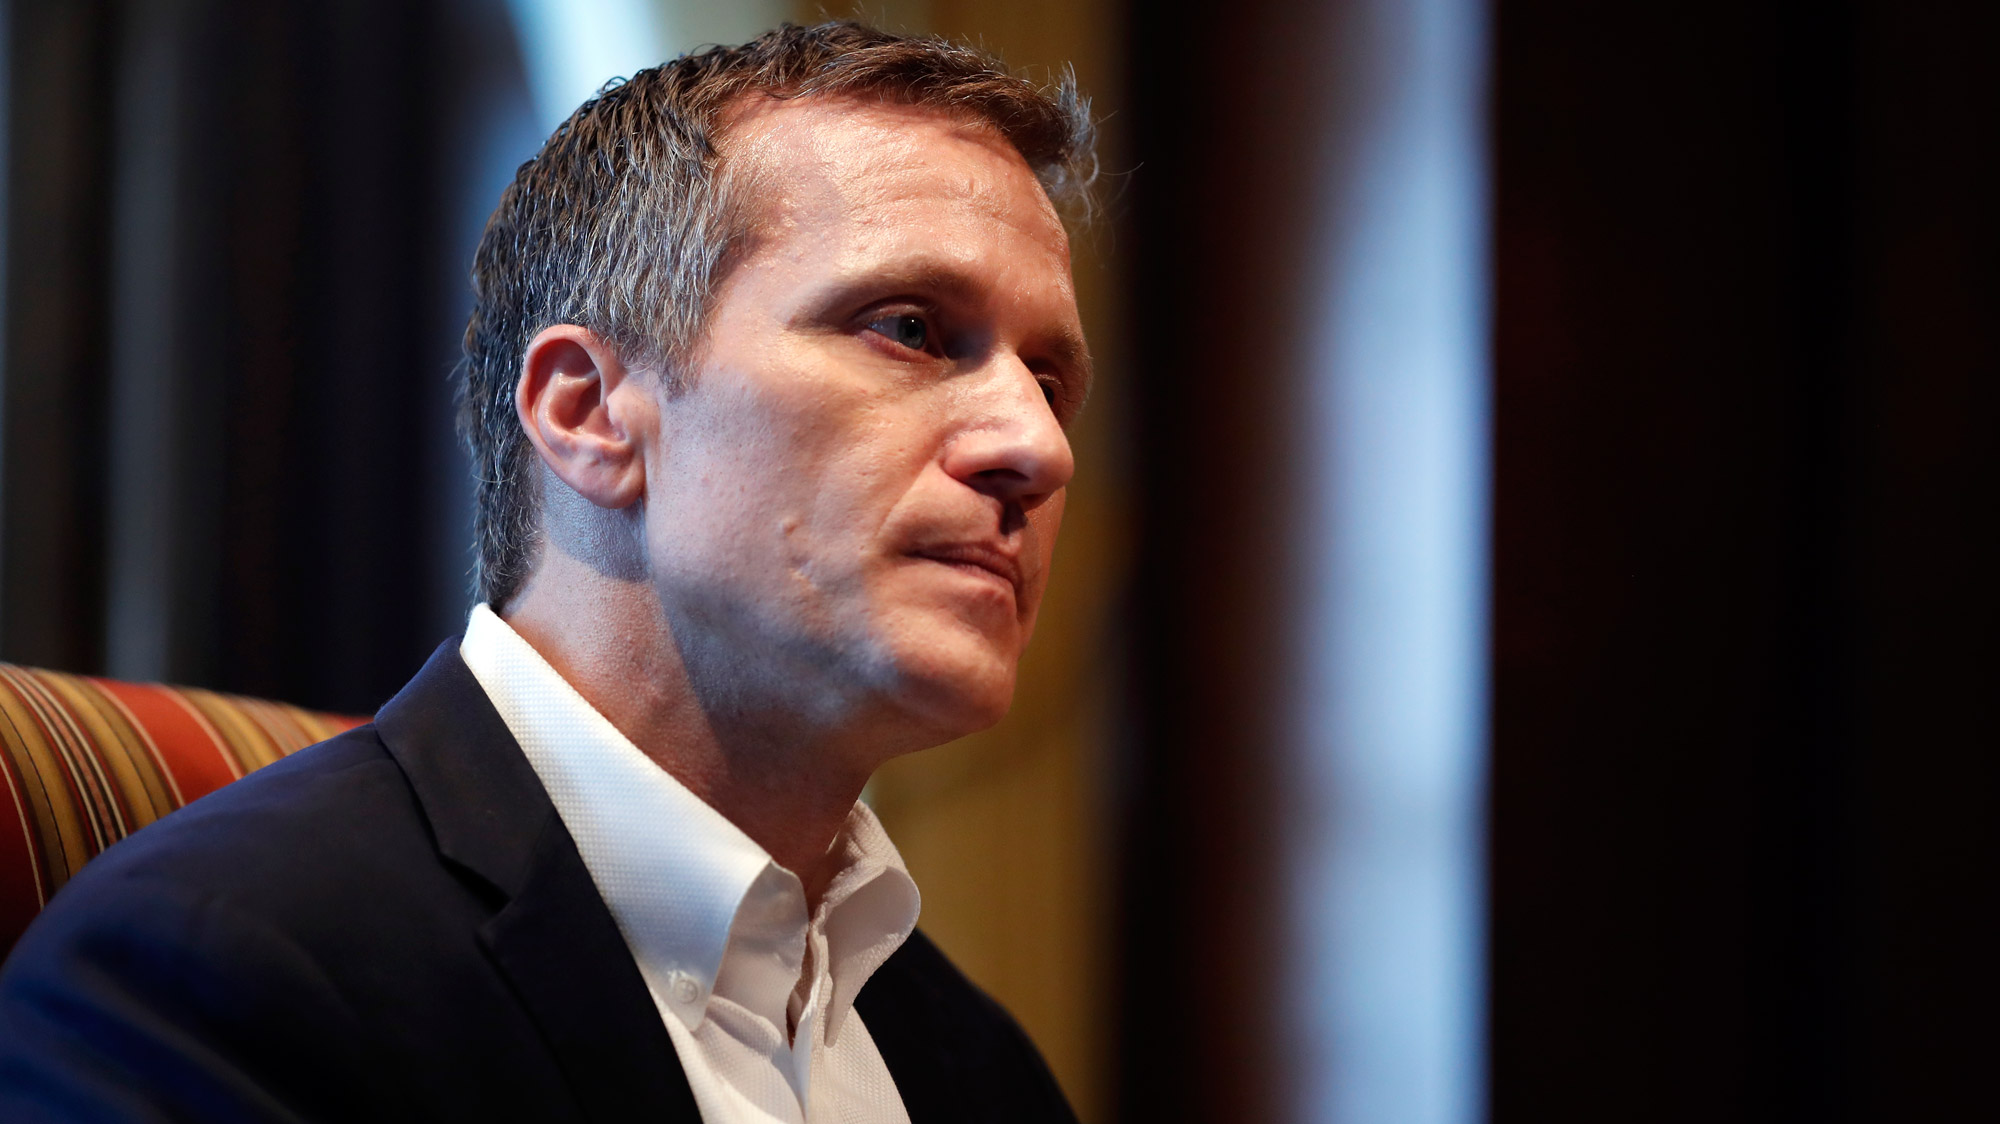 Missouri governor indicted for felony invasion of privacy